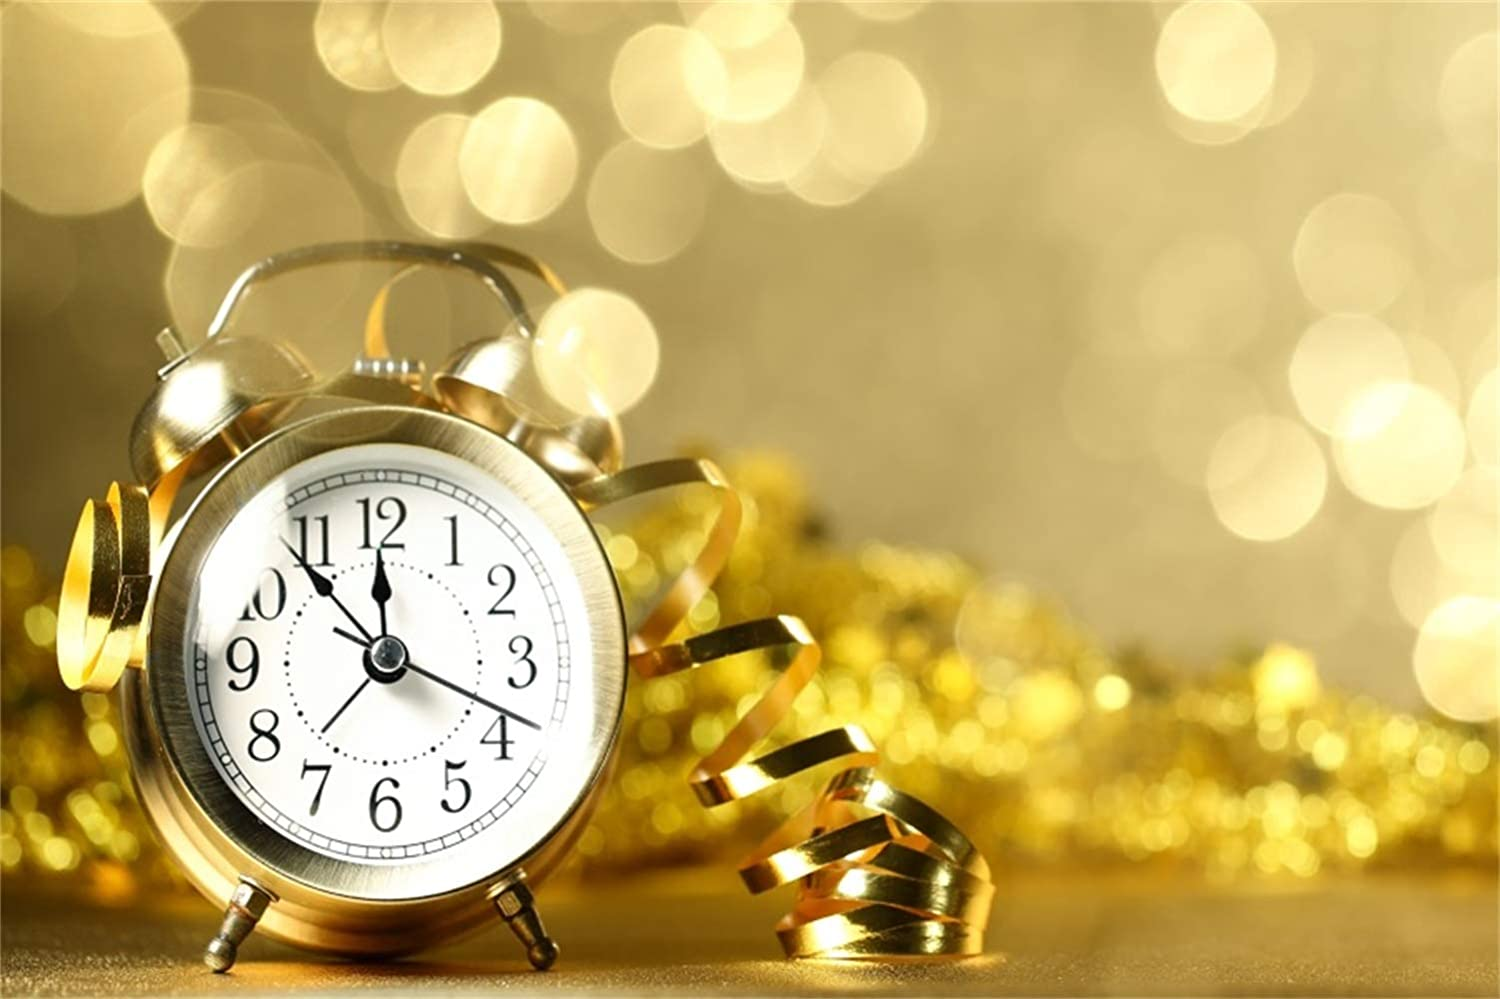 Yeele New Year Clock Photography Backdrop New Year 2020 Count Down Decoration Background Kids Newborn Adults Artistic Portrait 9x9ft Xmas New Year Events Photo Booth Photoshoot Wallpaper